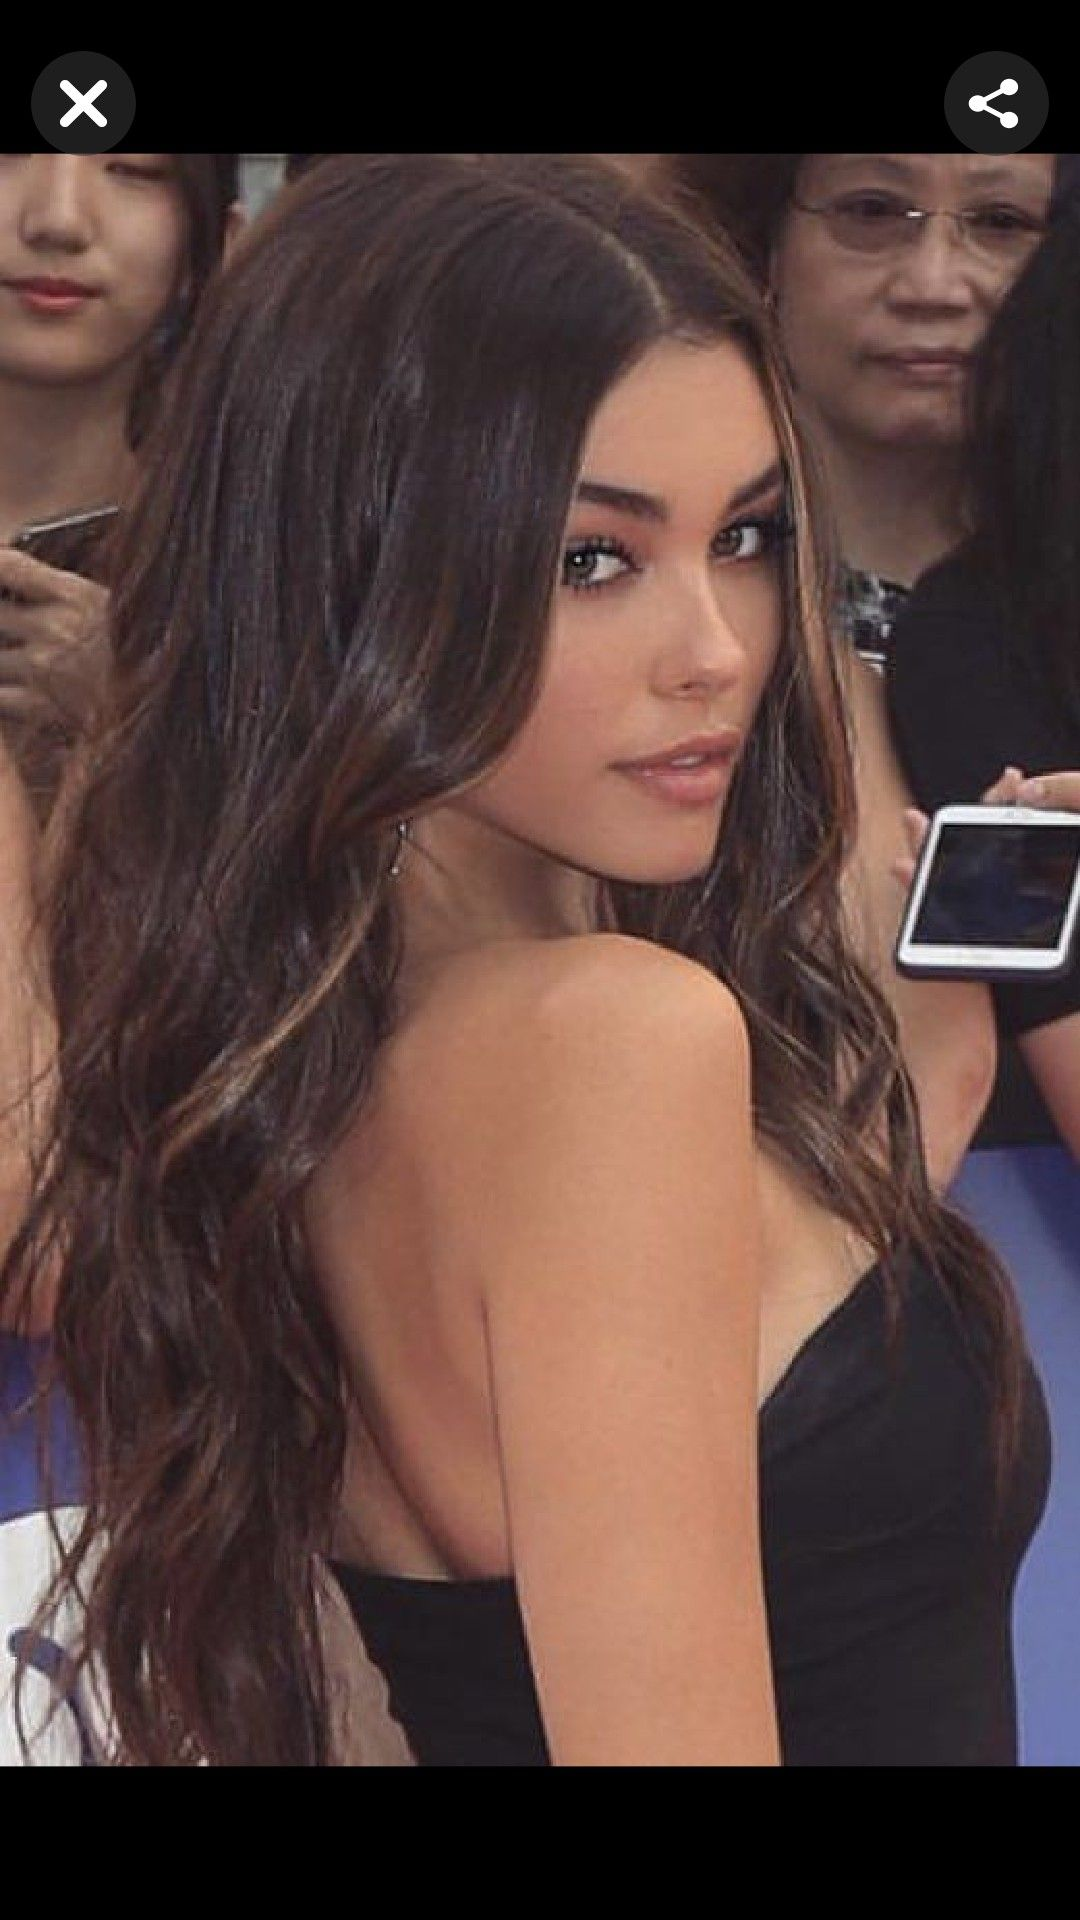 Hair Color Madison Beer Hair Madison Beer Makeup Beer For Hair